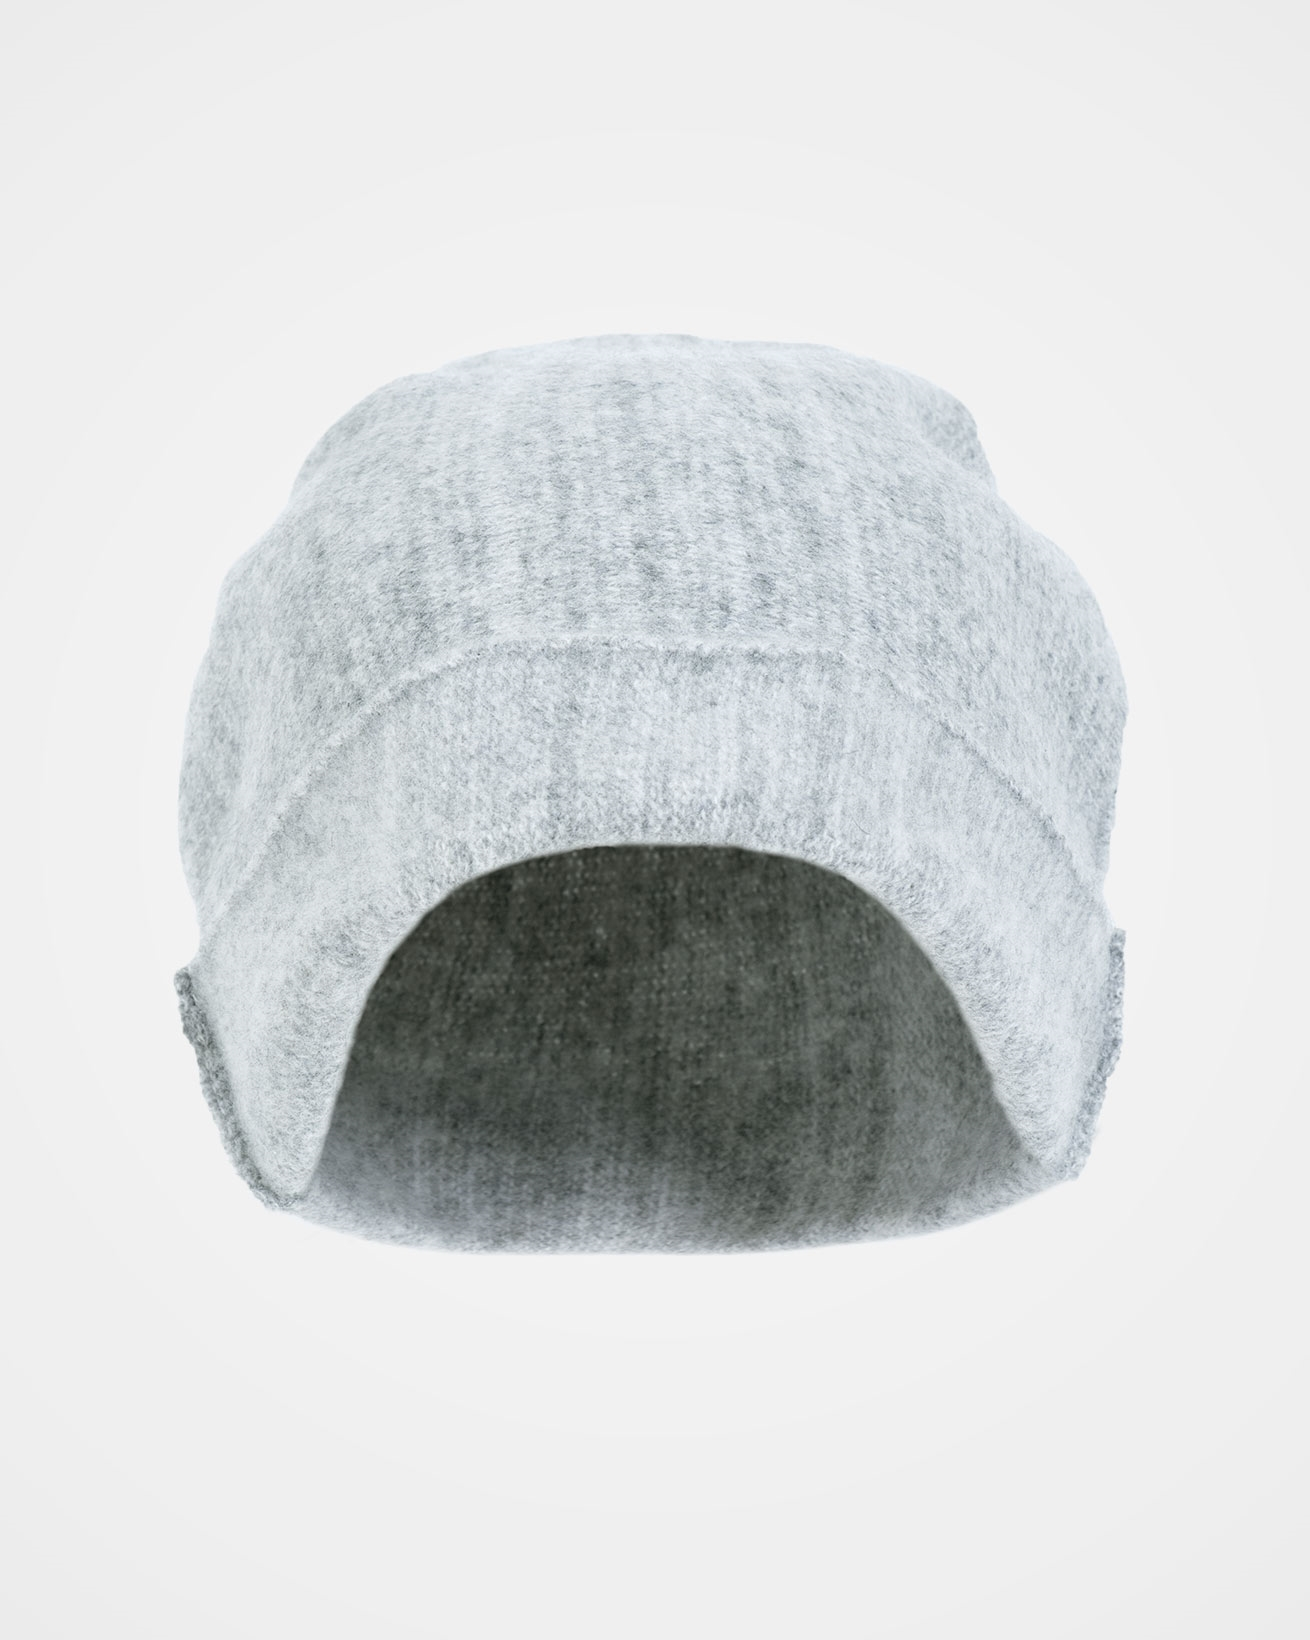 7656_grey-wool-hat_soft-grey_front.jpg